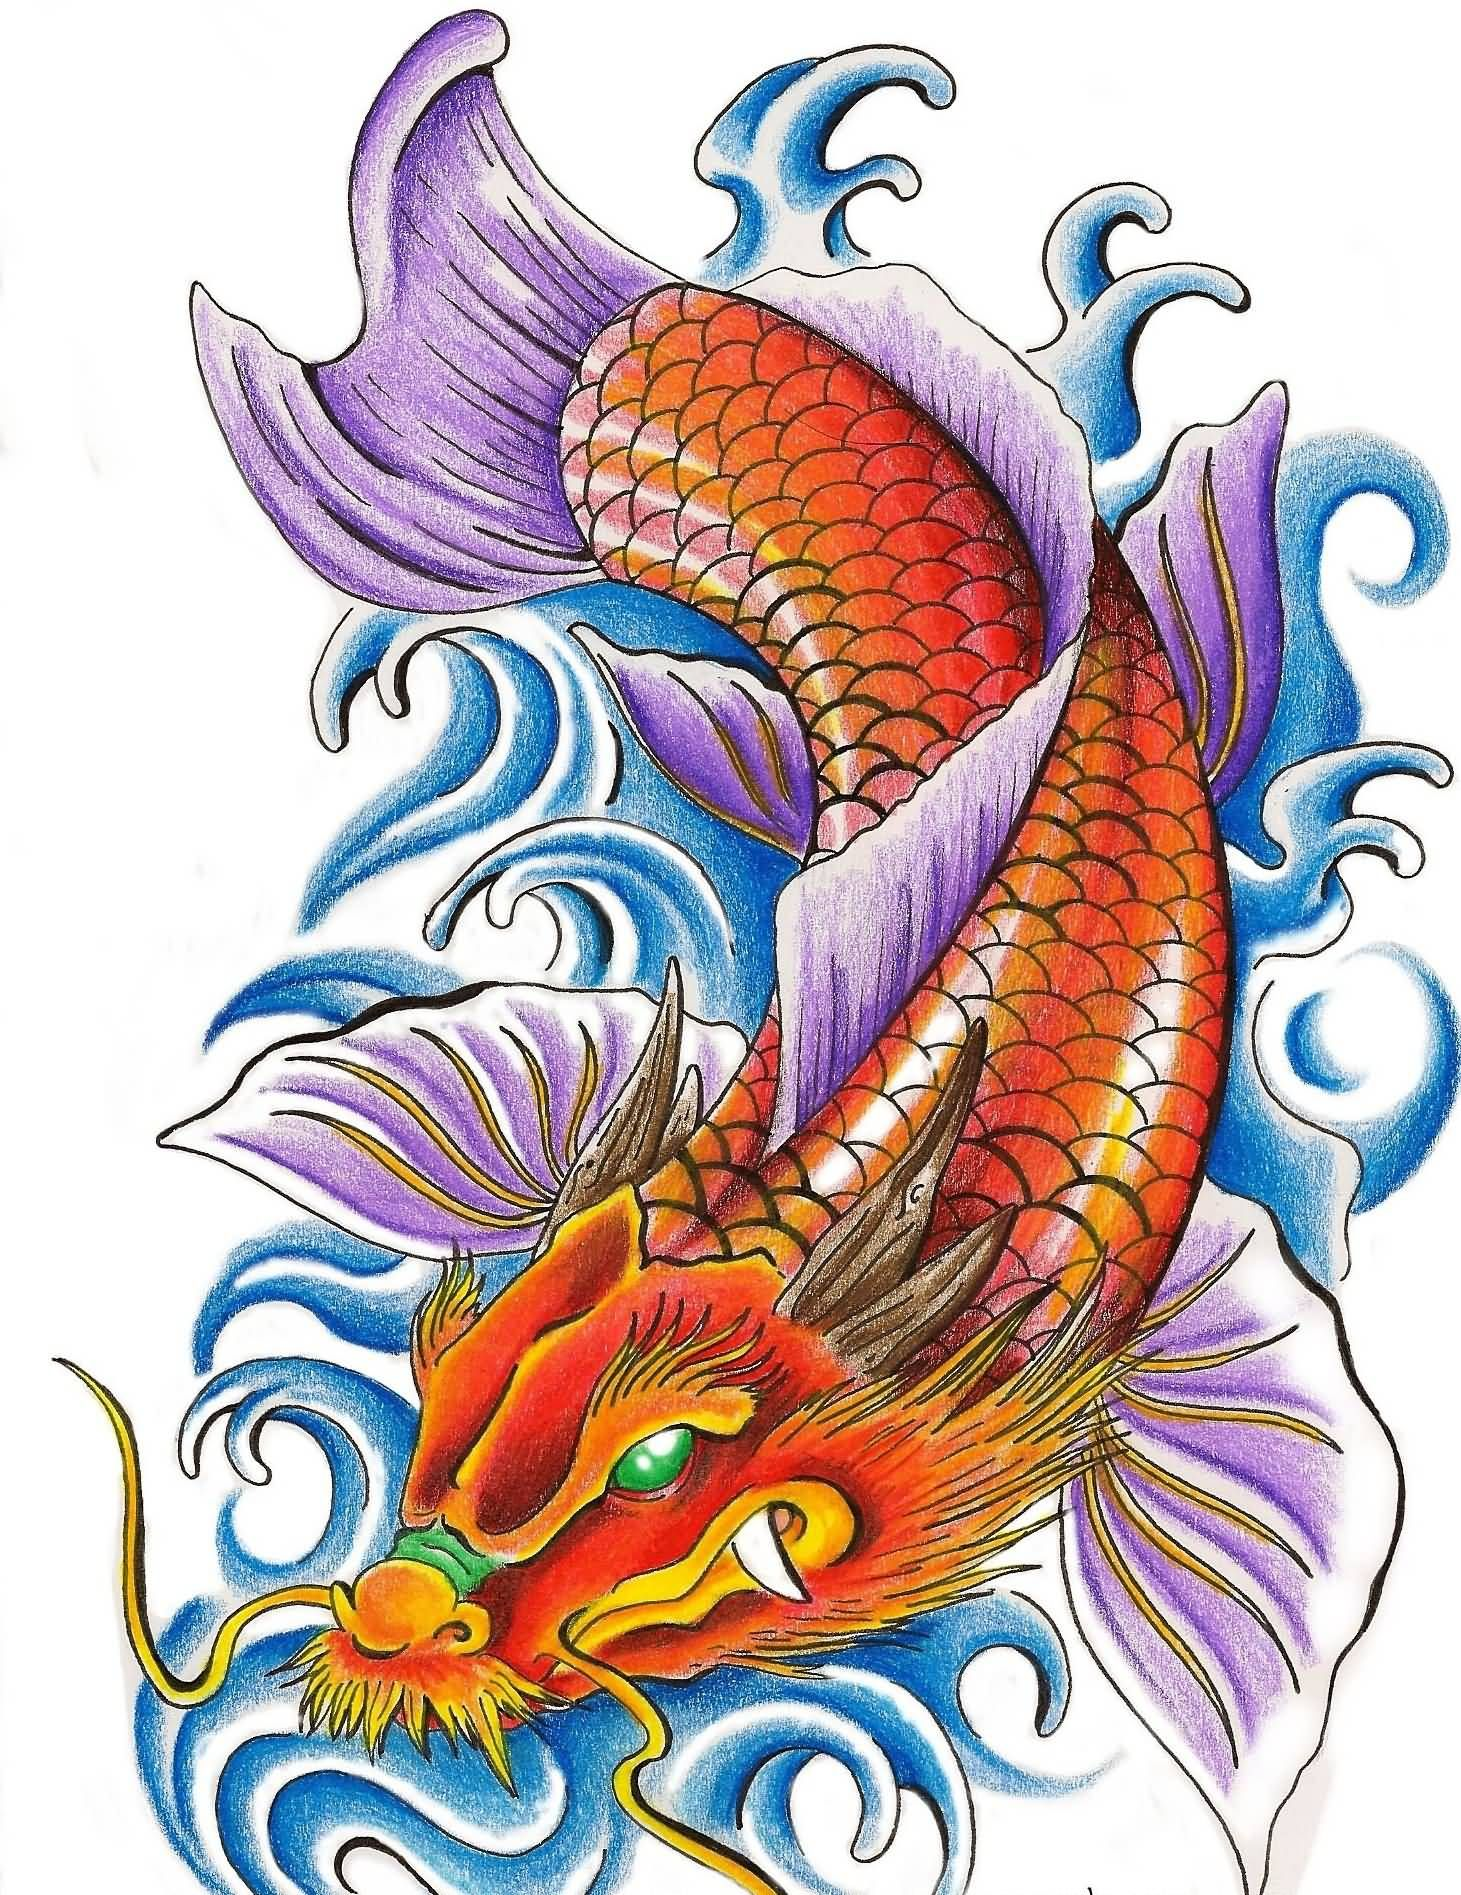 Color Water Waves And Dragon Fish Tattoo Design Koi Fish Drawing Tattoo Samurai Tattoo Design Traditional Owl Tattoos